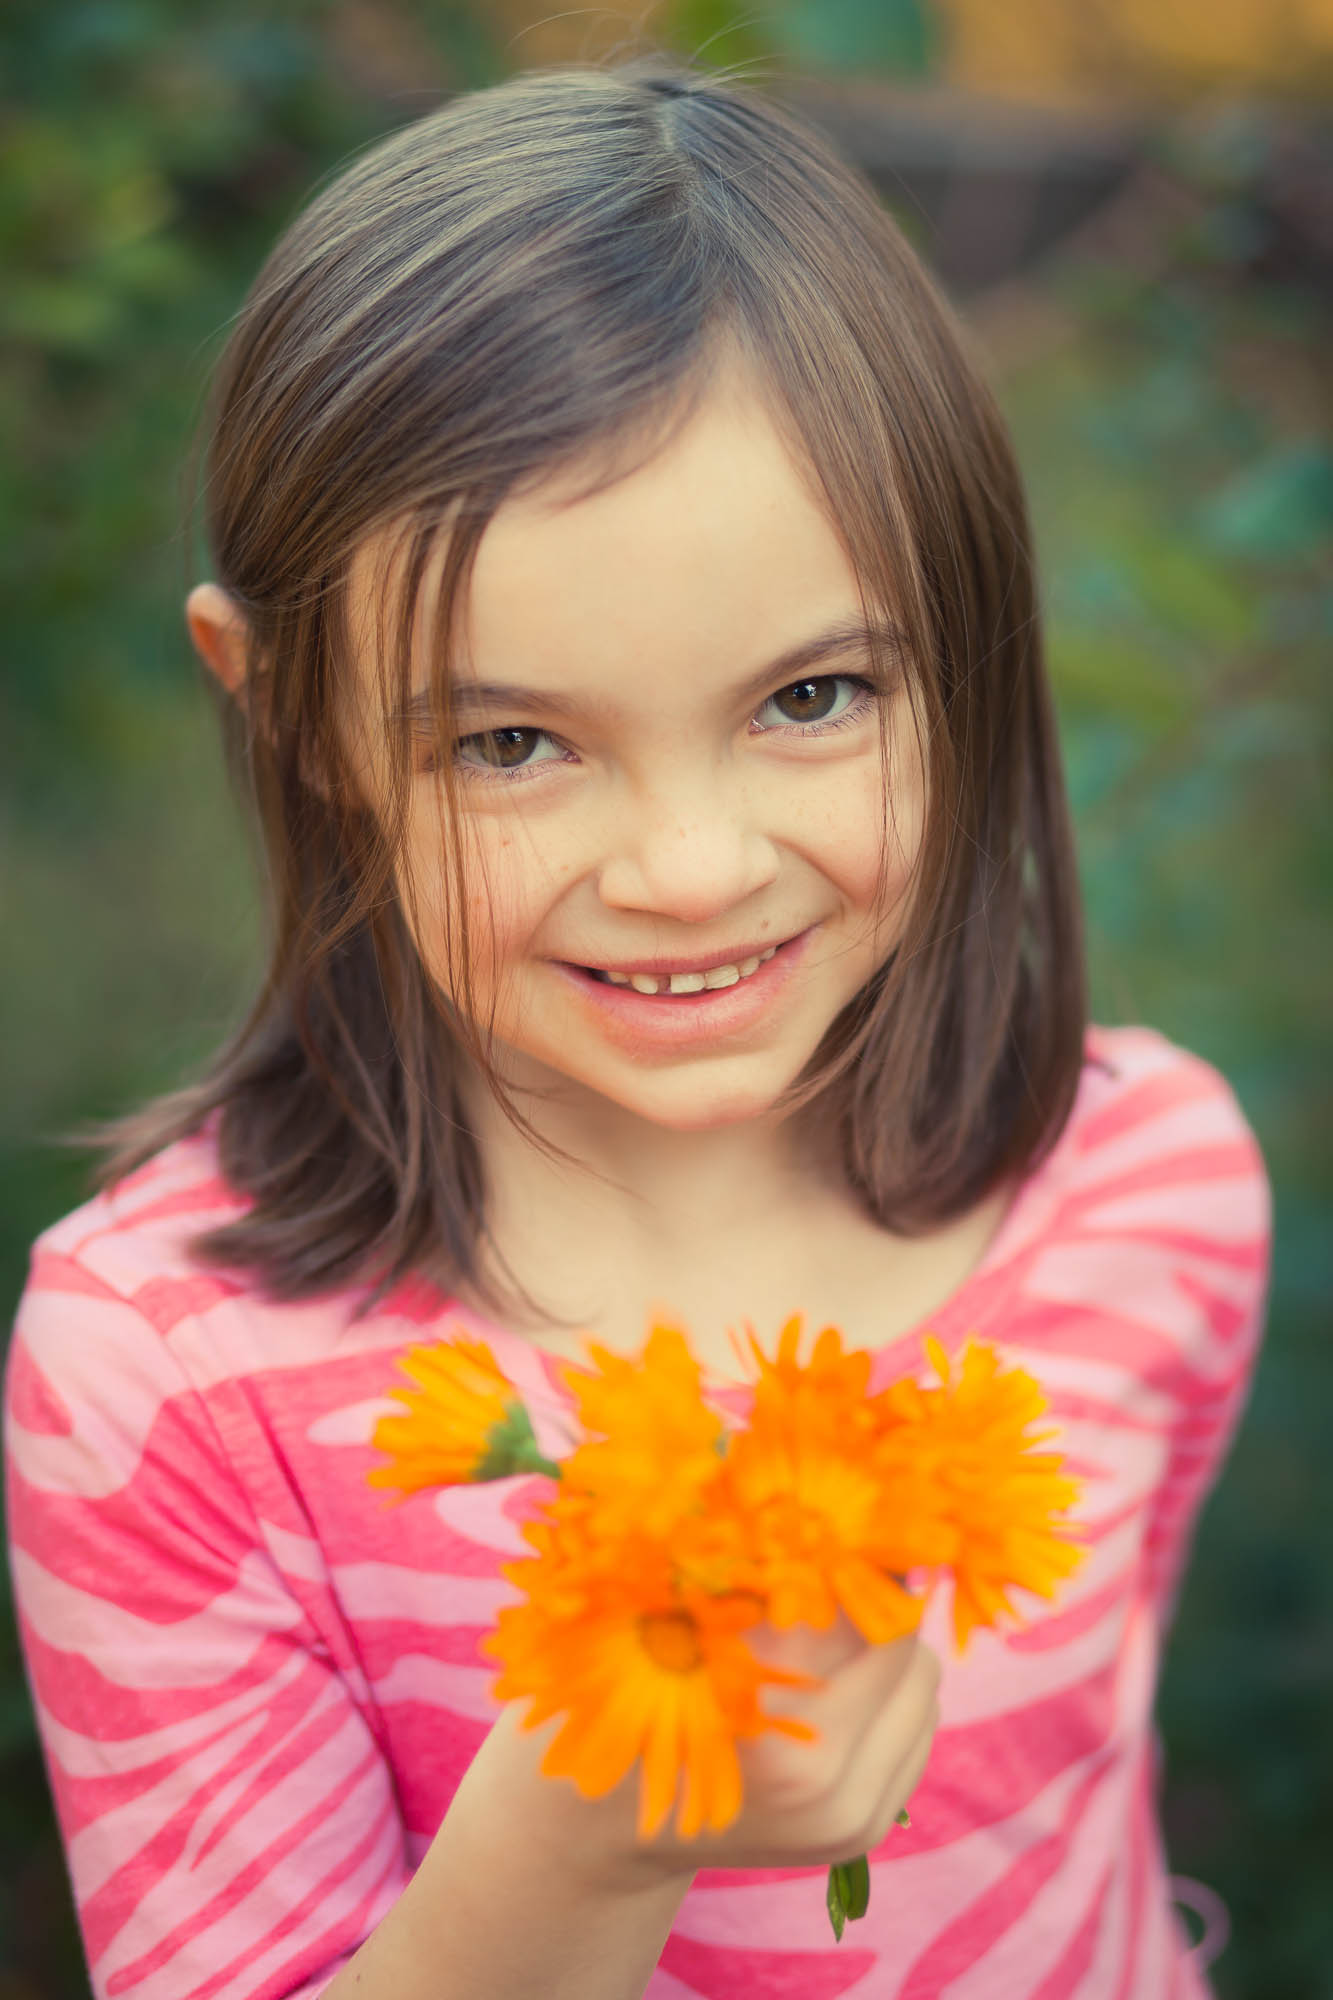 42/52/Portrait - Flower Girl